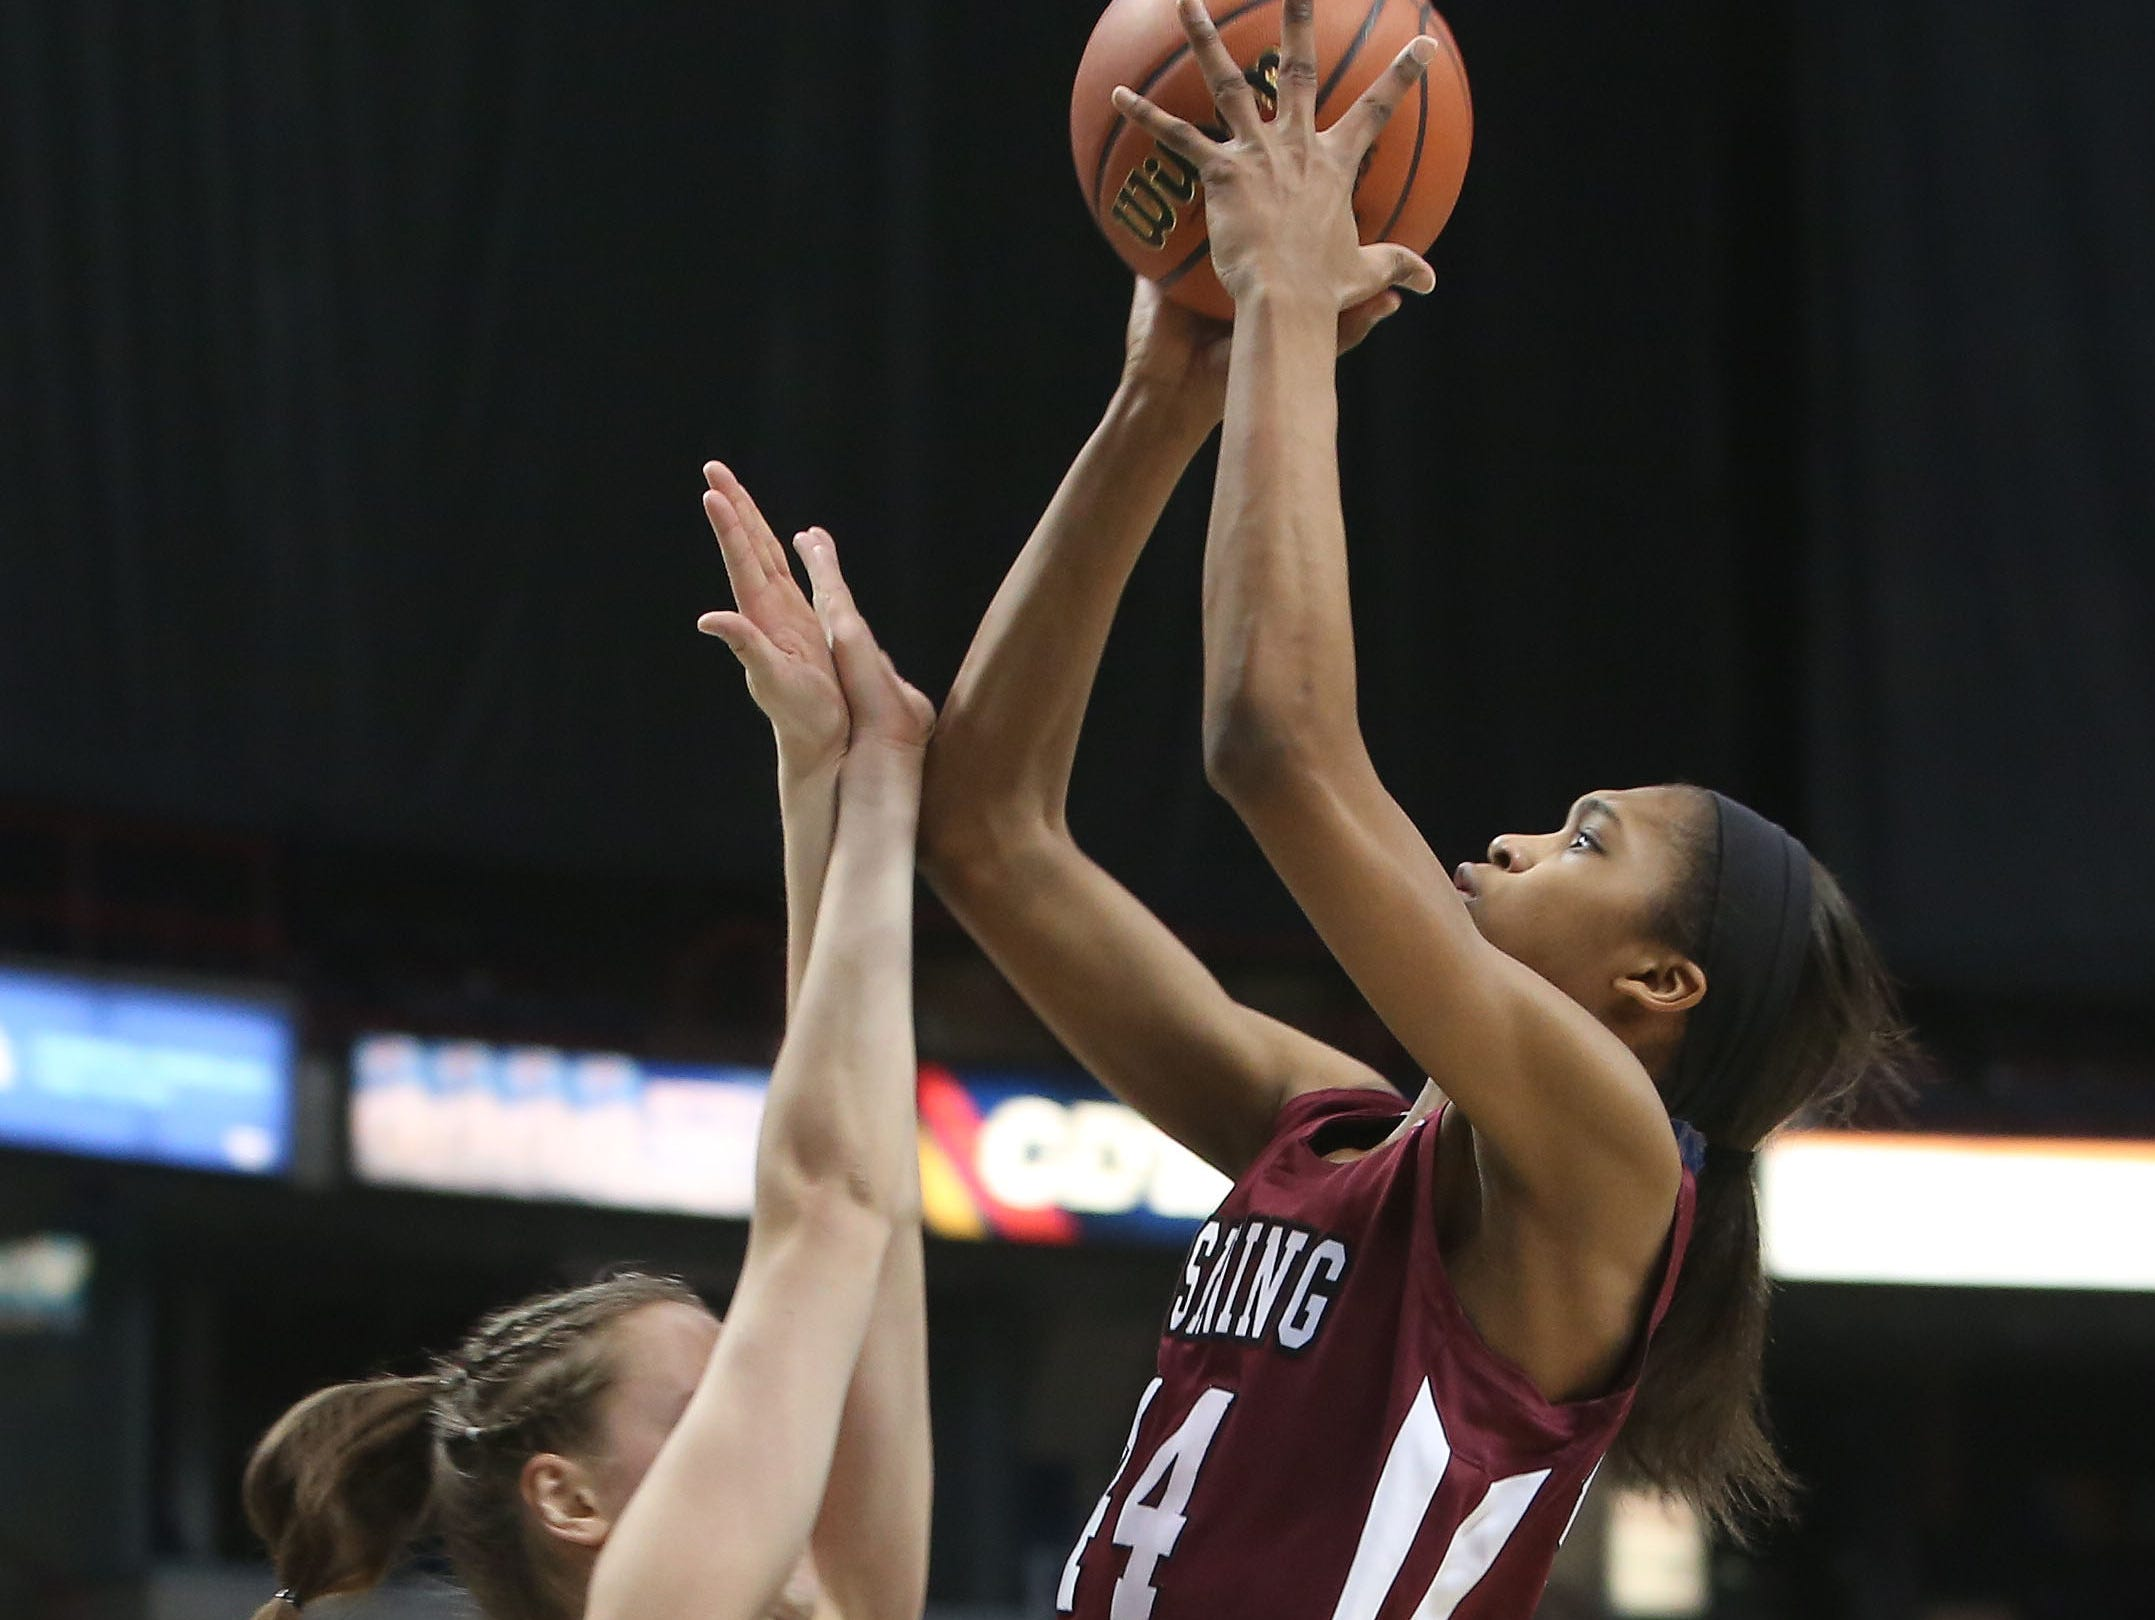 Ossining's Aubrey Griffin (44) goes up for a shot in front of Long Island Lutheran's Sarah Mortensen (5) during the girls Class A final of the New York State Federation Tournament of Champions at the Times Union Center in Albany March 18, 2016.